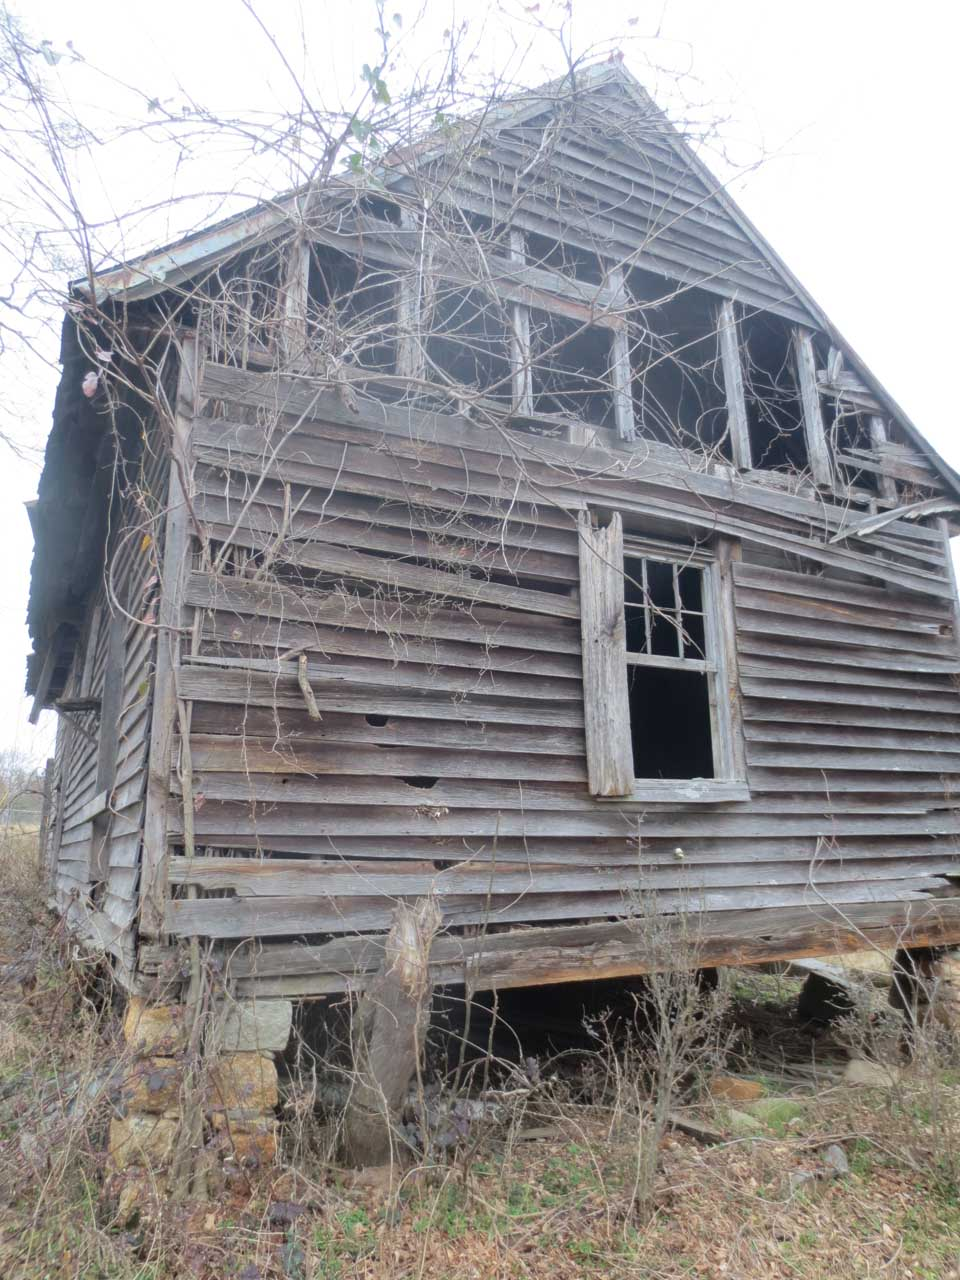 rw_sharecroppers cabin-3692.jpg